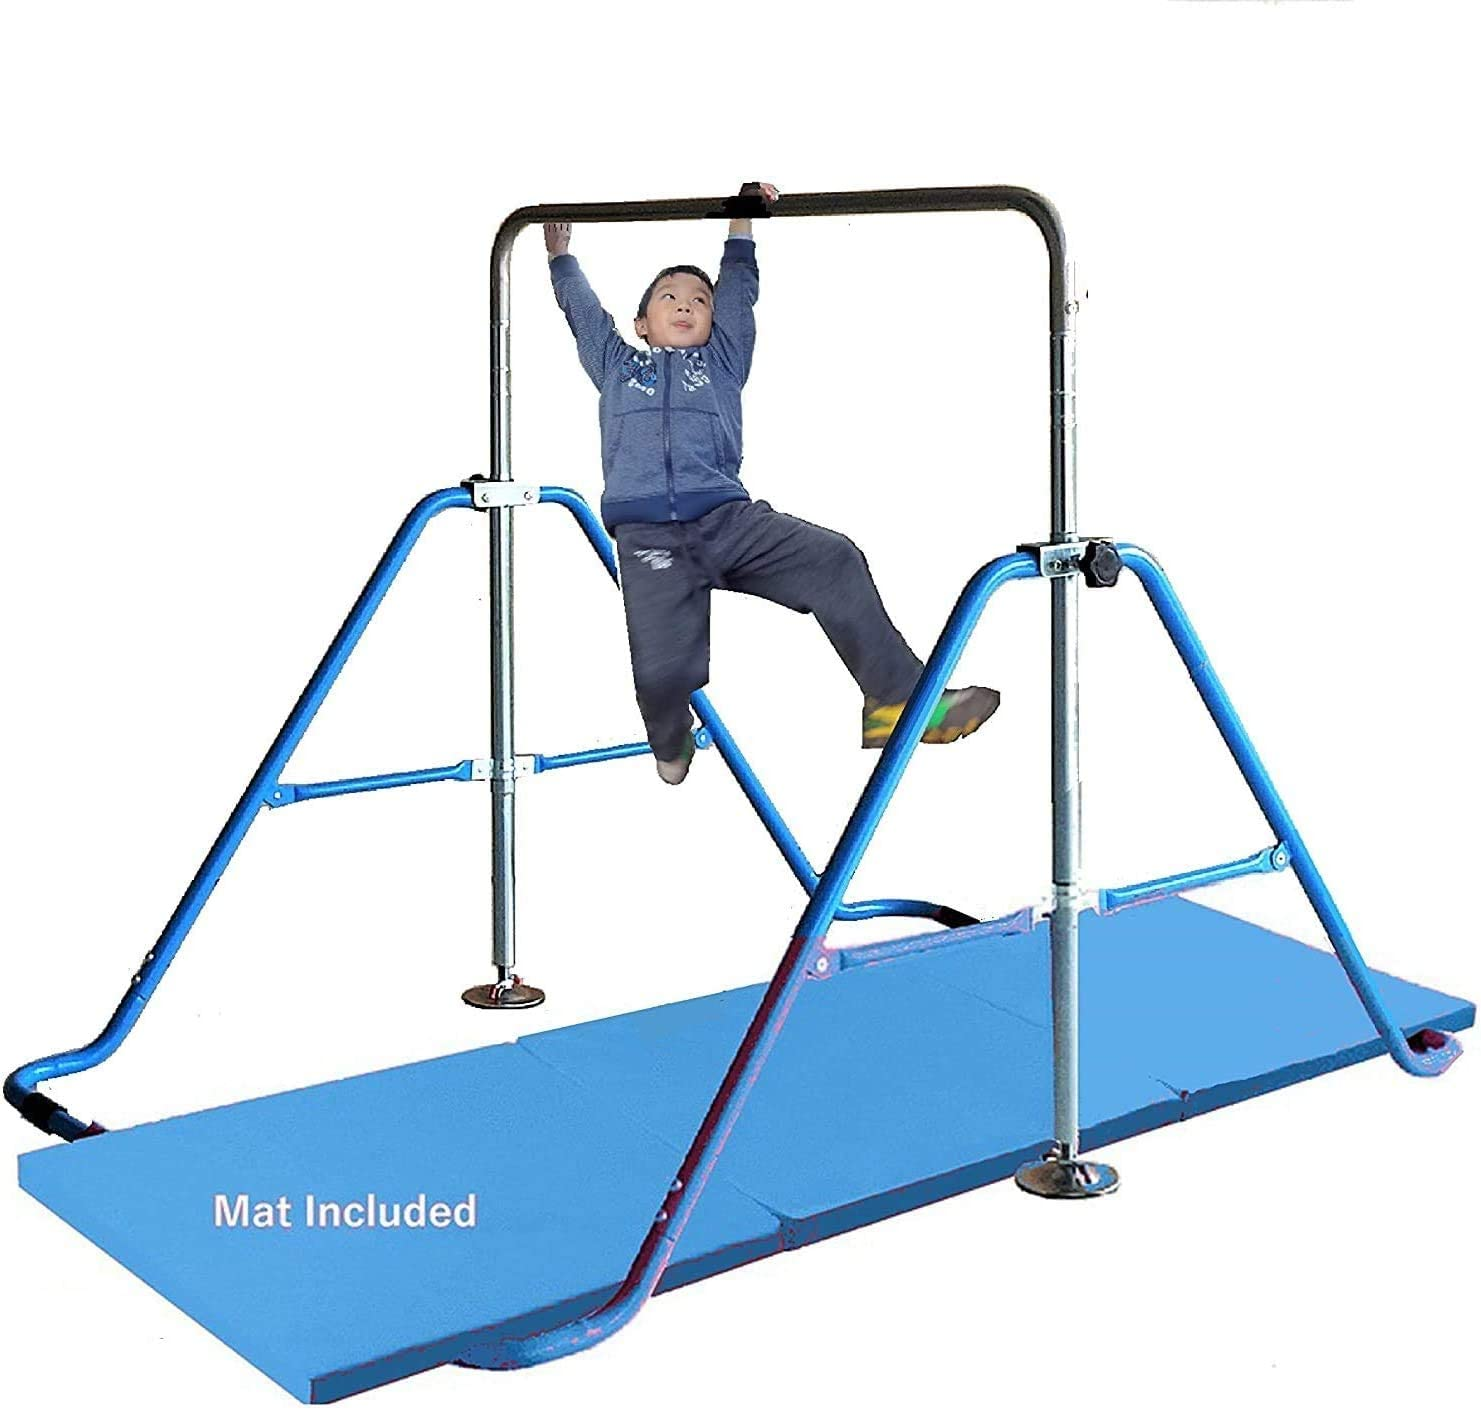 Gymnastics Bar for Kids with 2'x6' Tumble Heigh Mat All Popularity items in the store Expandable